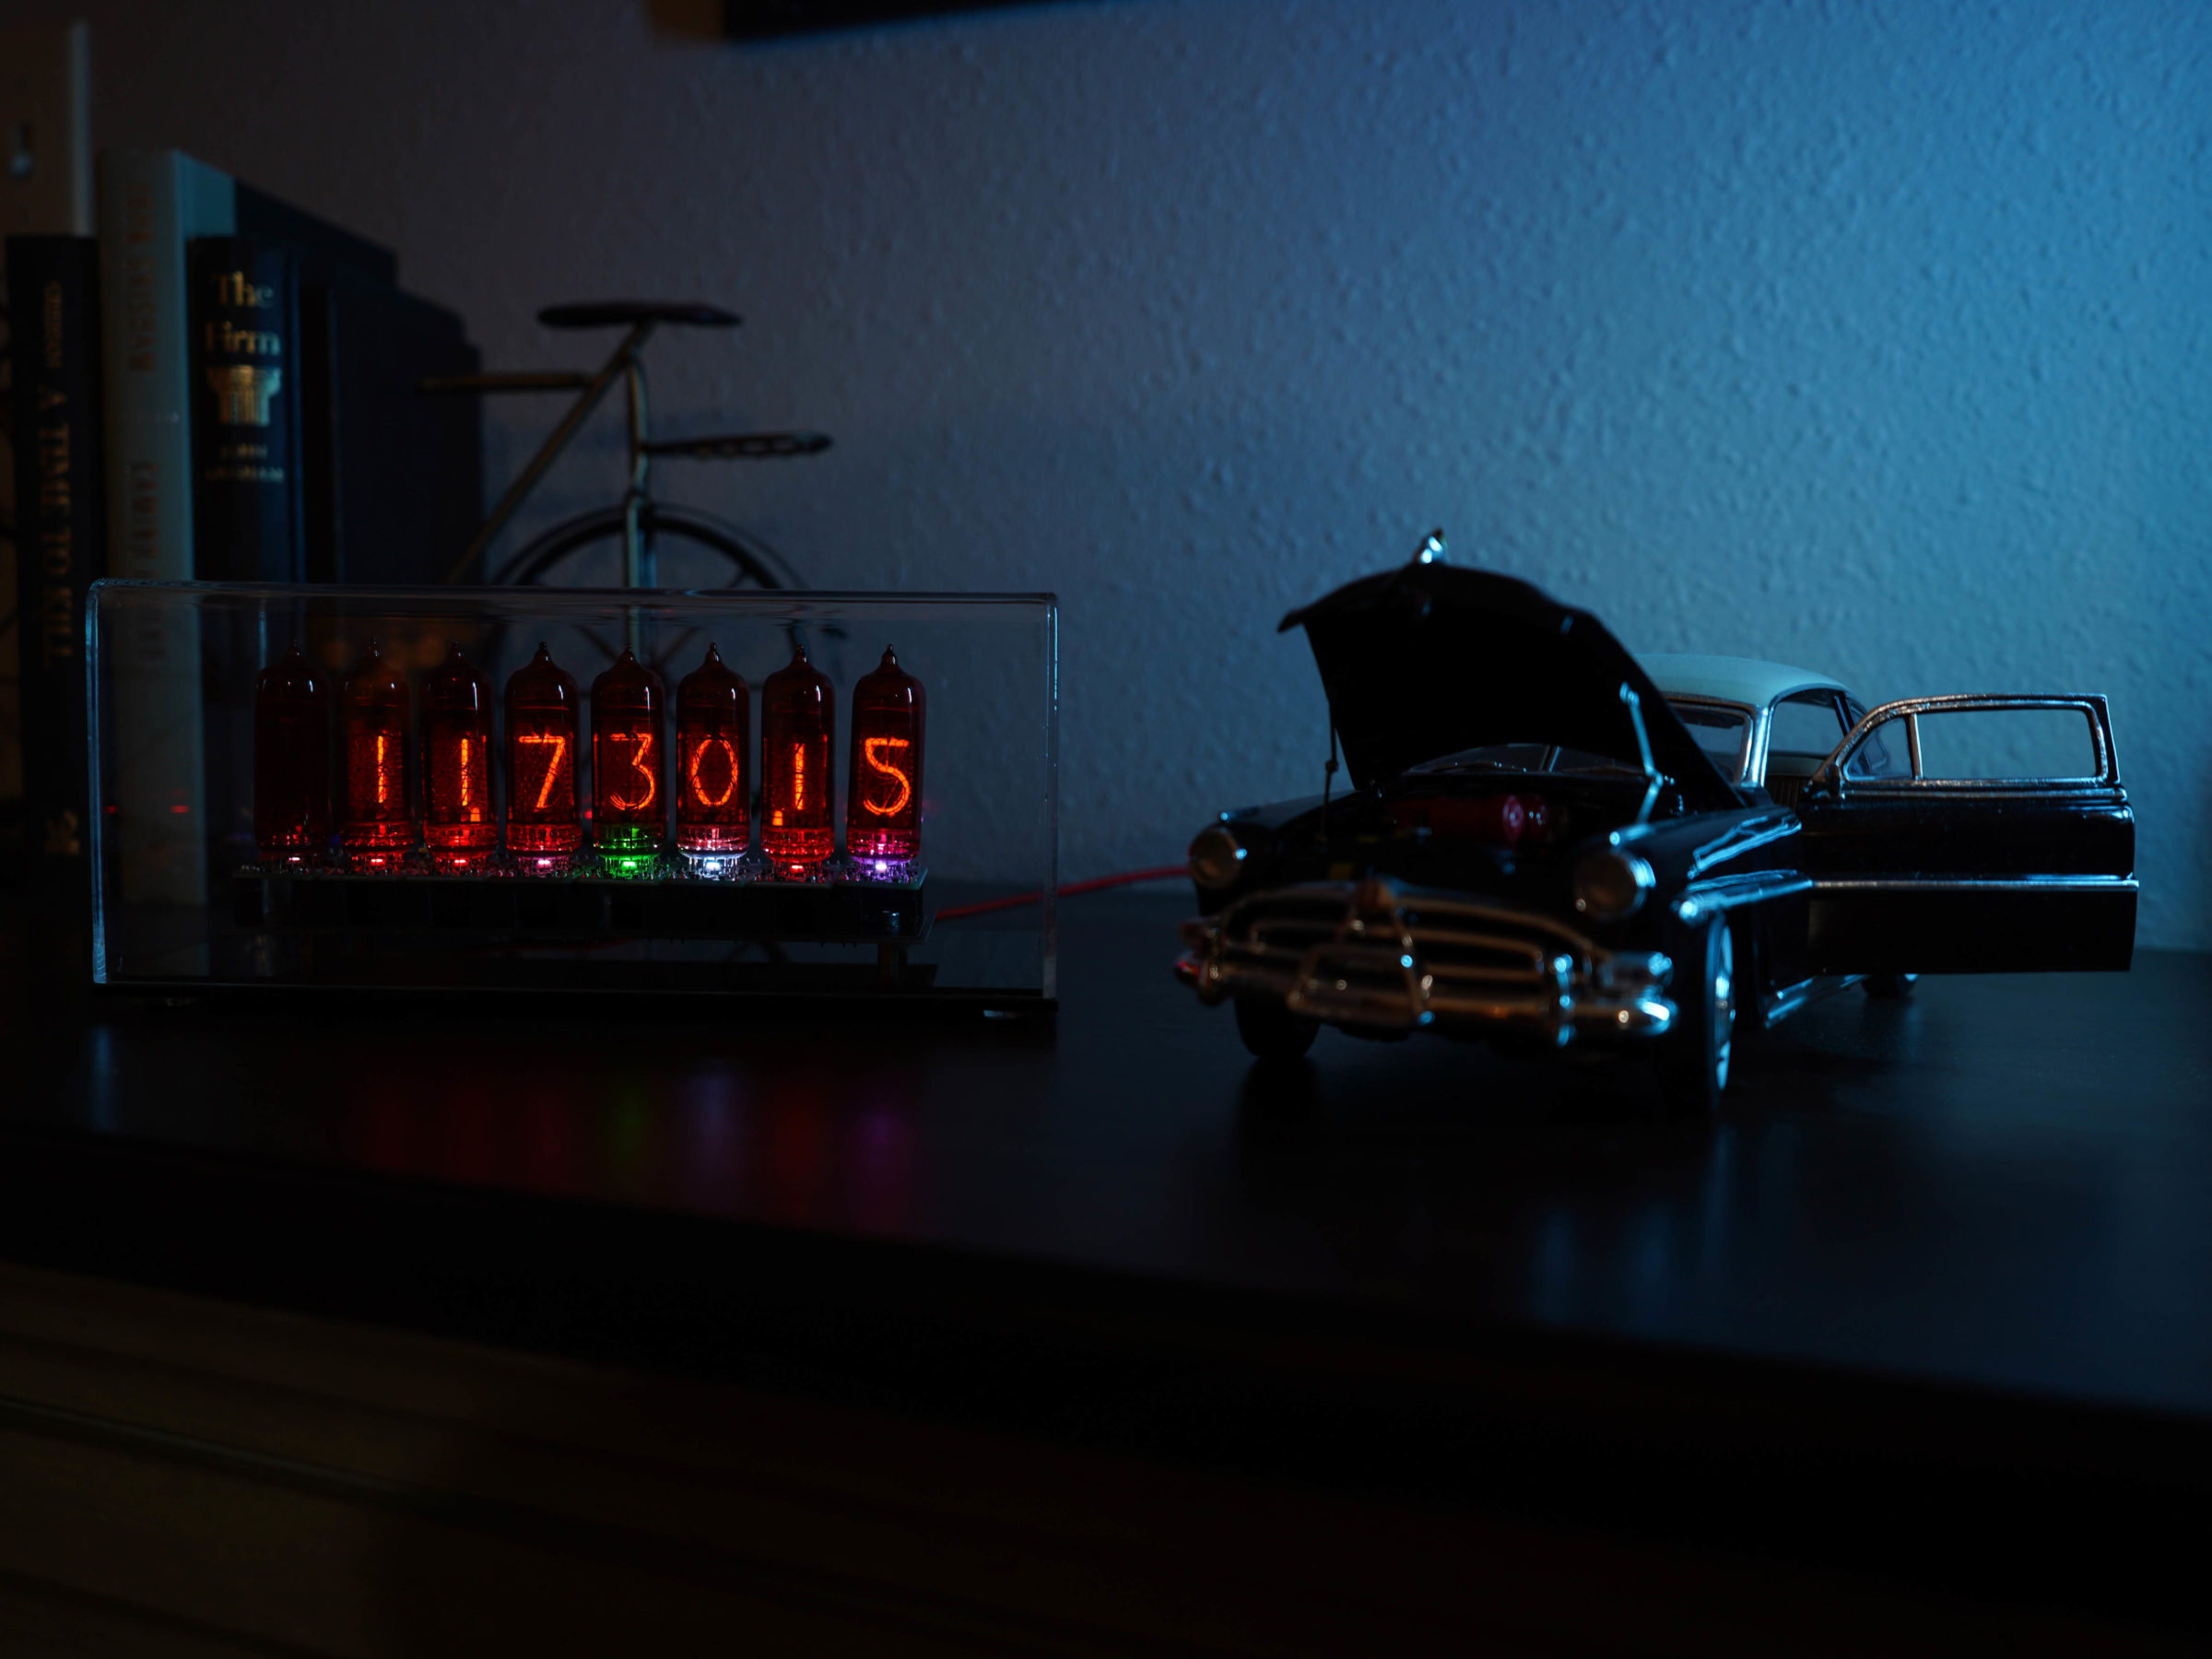 Voltage Goat Vintage IN14 Nixie Bitcoin Ticker with Car